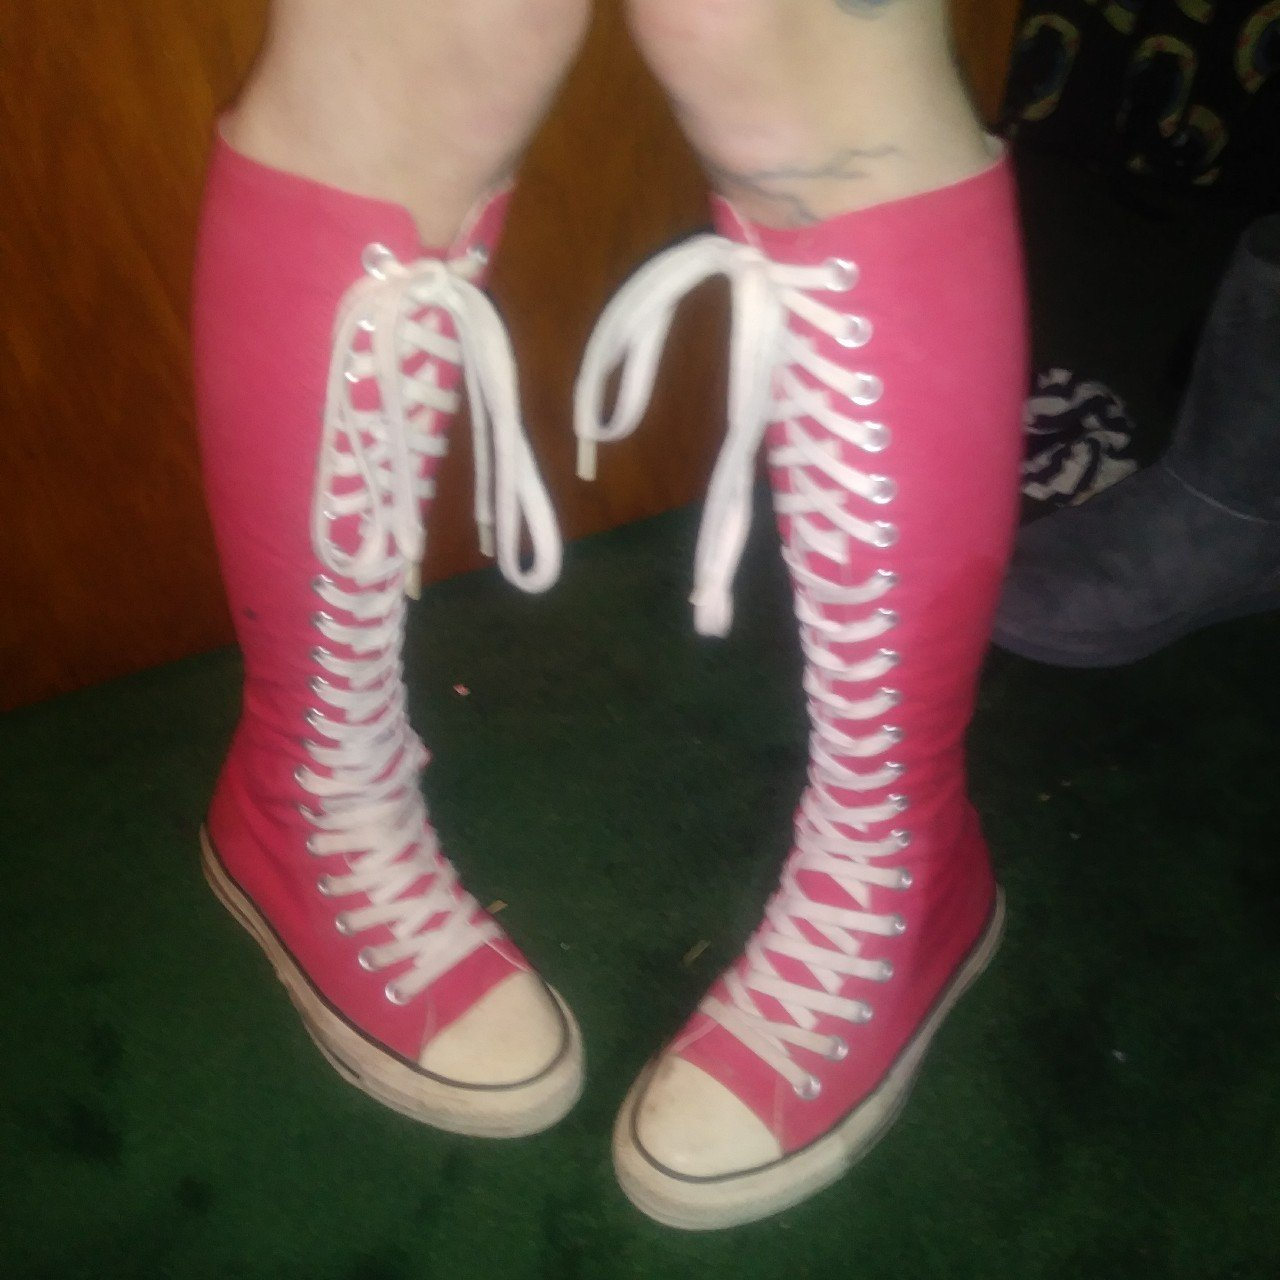 pink knee high converse shoes Online